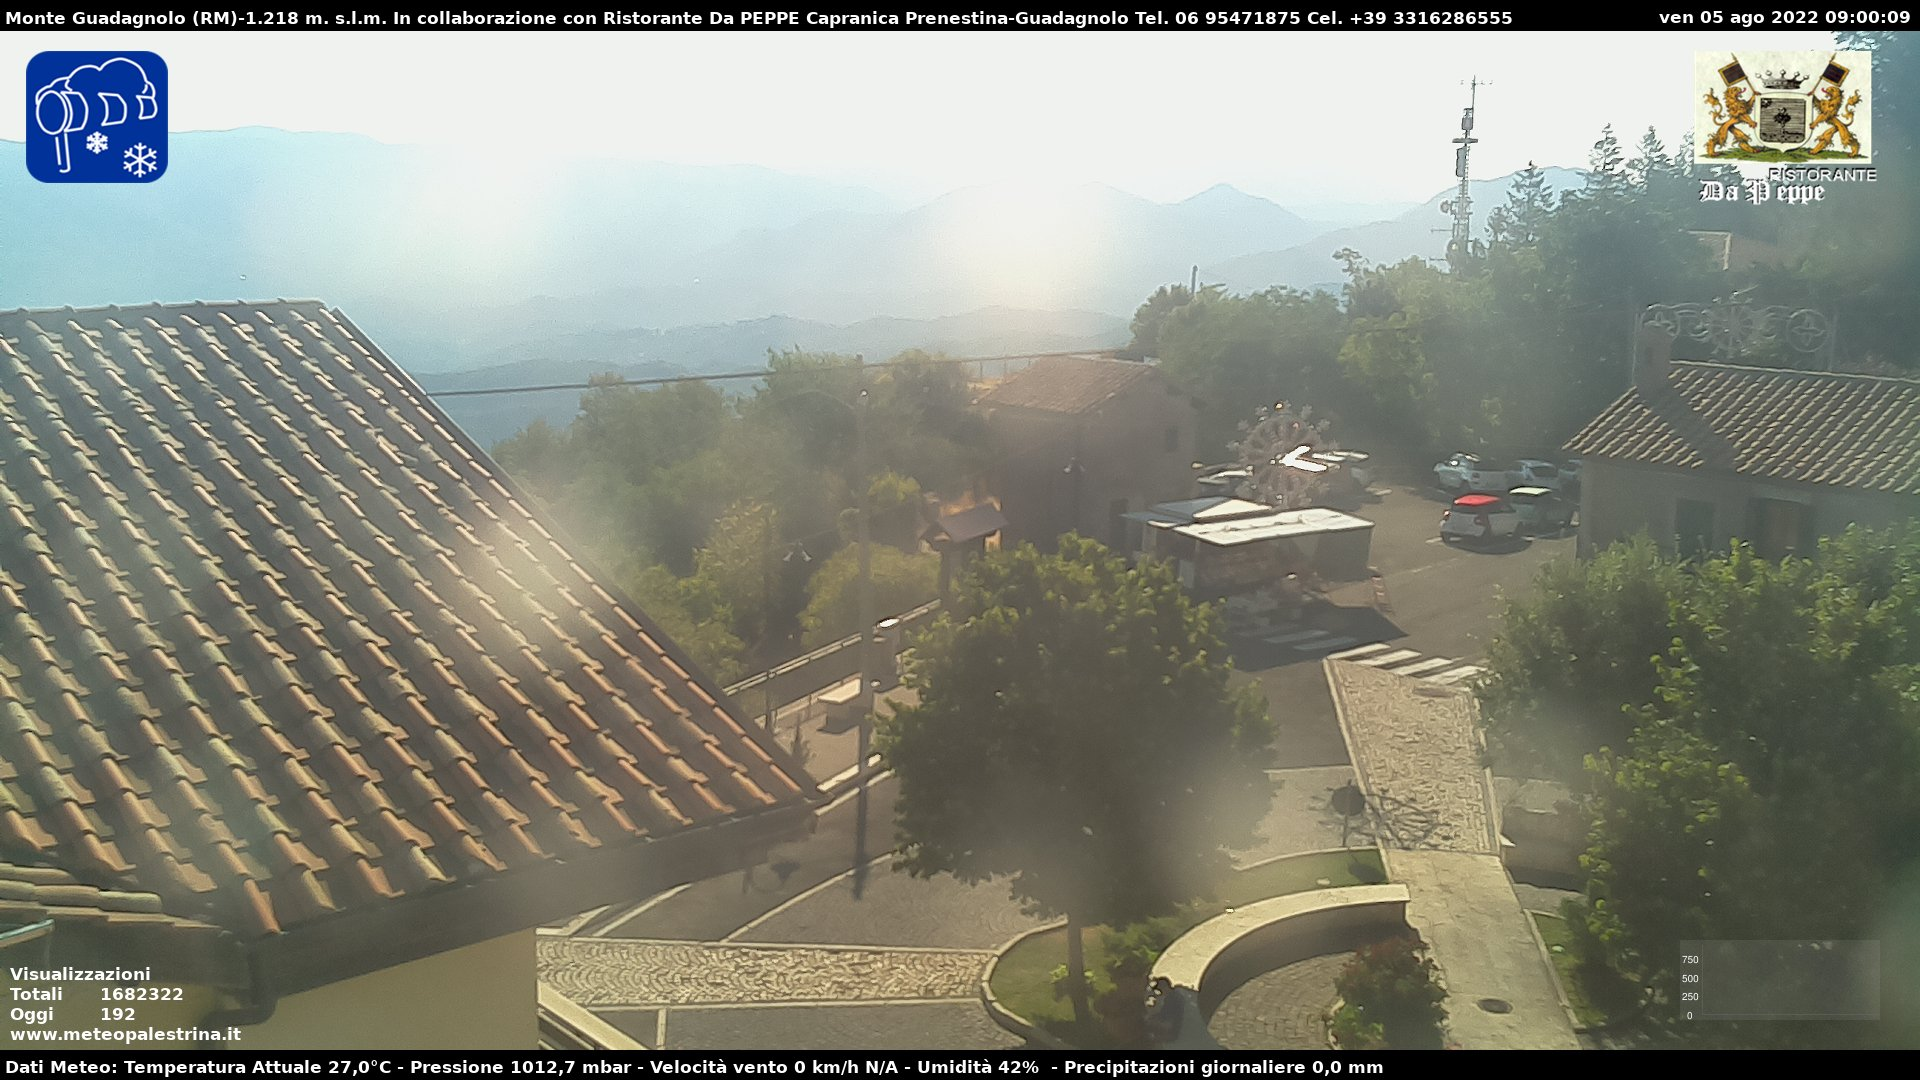 Webcam Monte Guadagnolo